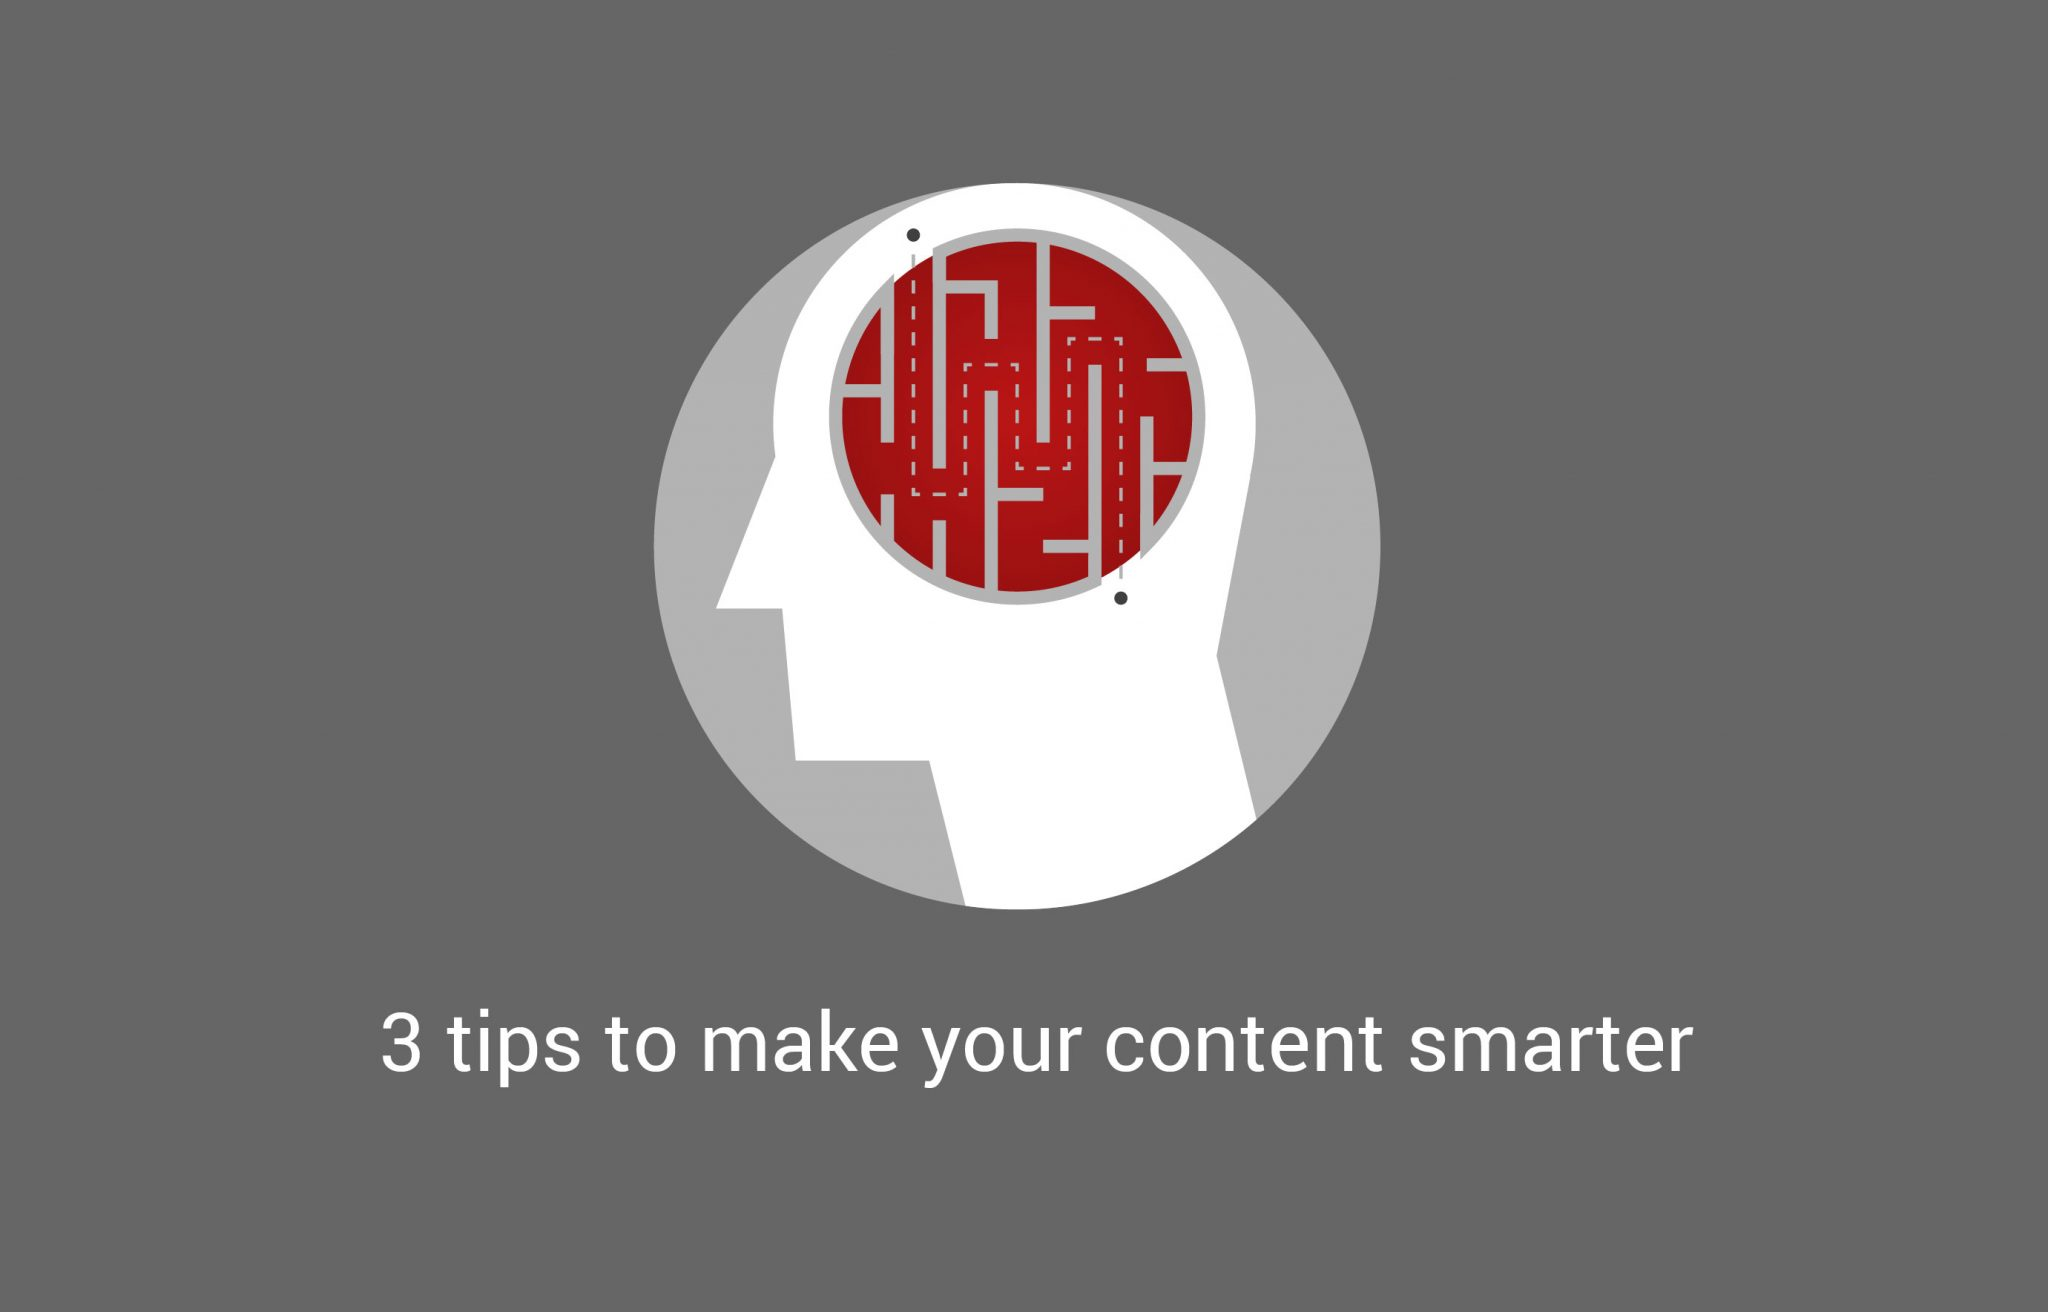 3 tips to make your content smarter